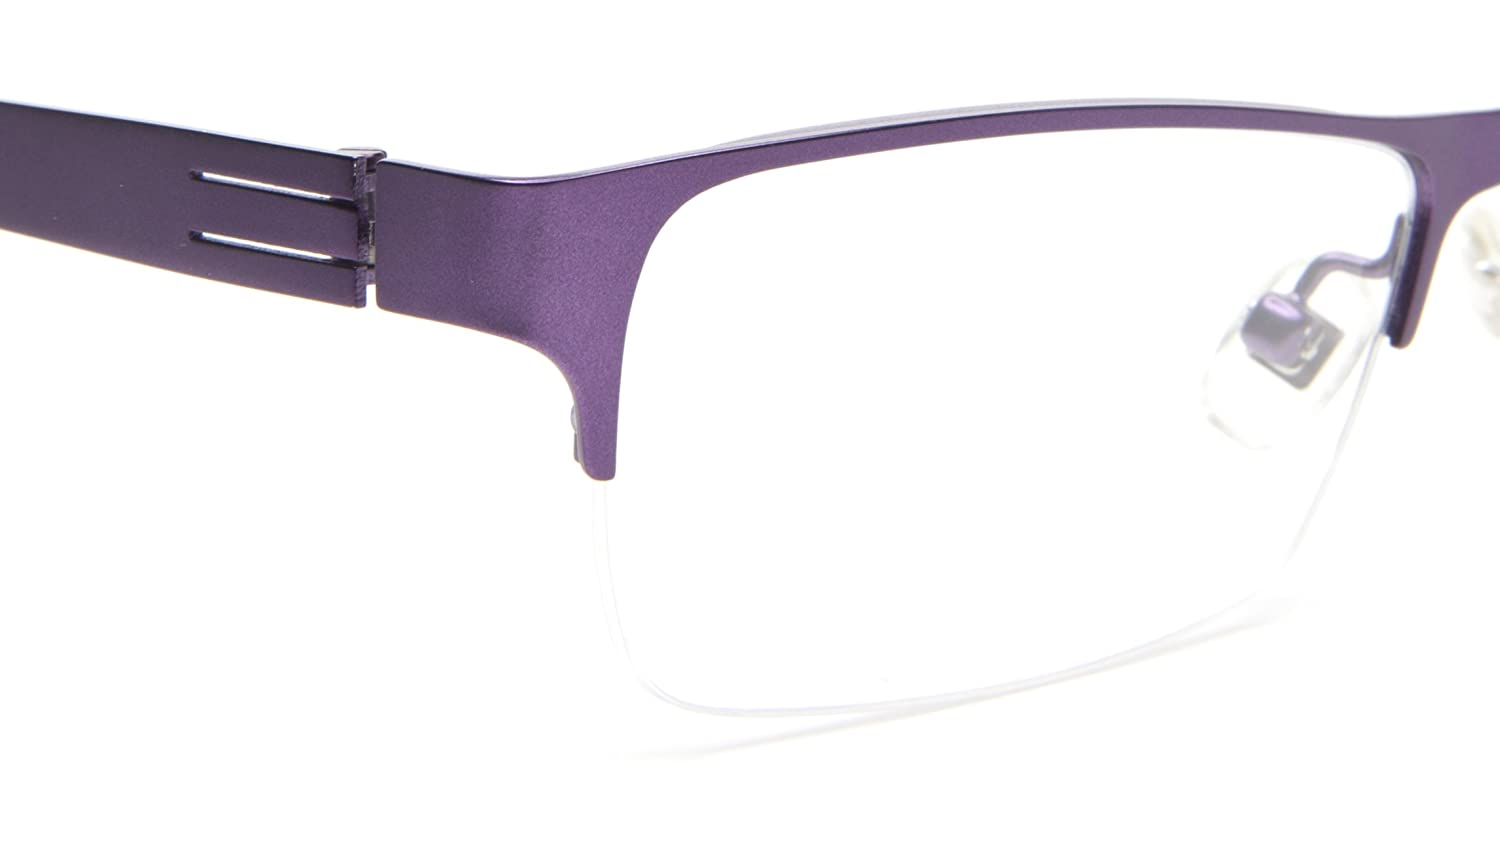 075bf6faf0 Amazon.com  NEW PRODESIGN DENMARK 1247 c.3531 VIOLET EYEGLASSES FRAME  50-16-140 IF B28 Japan  Clothing